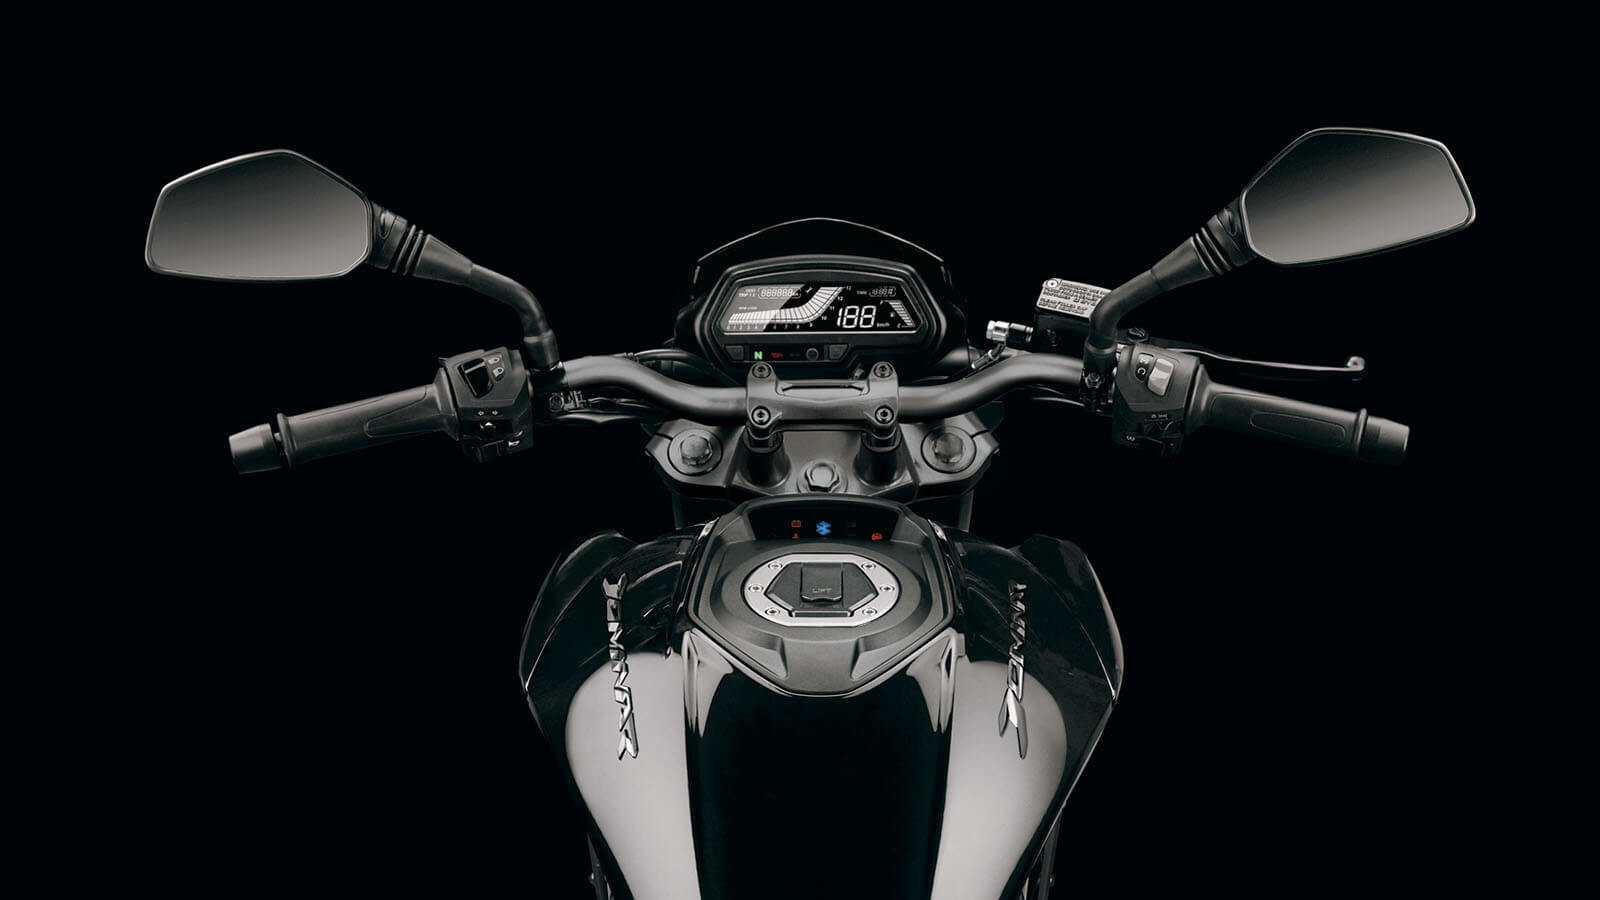 Bajaj Dominar 400 Price Mileage Images And Specifications